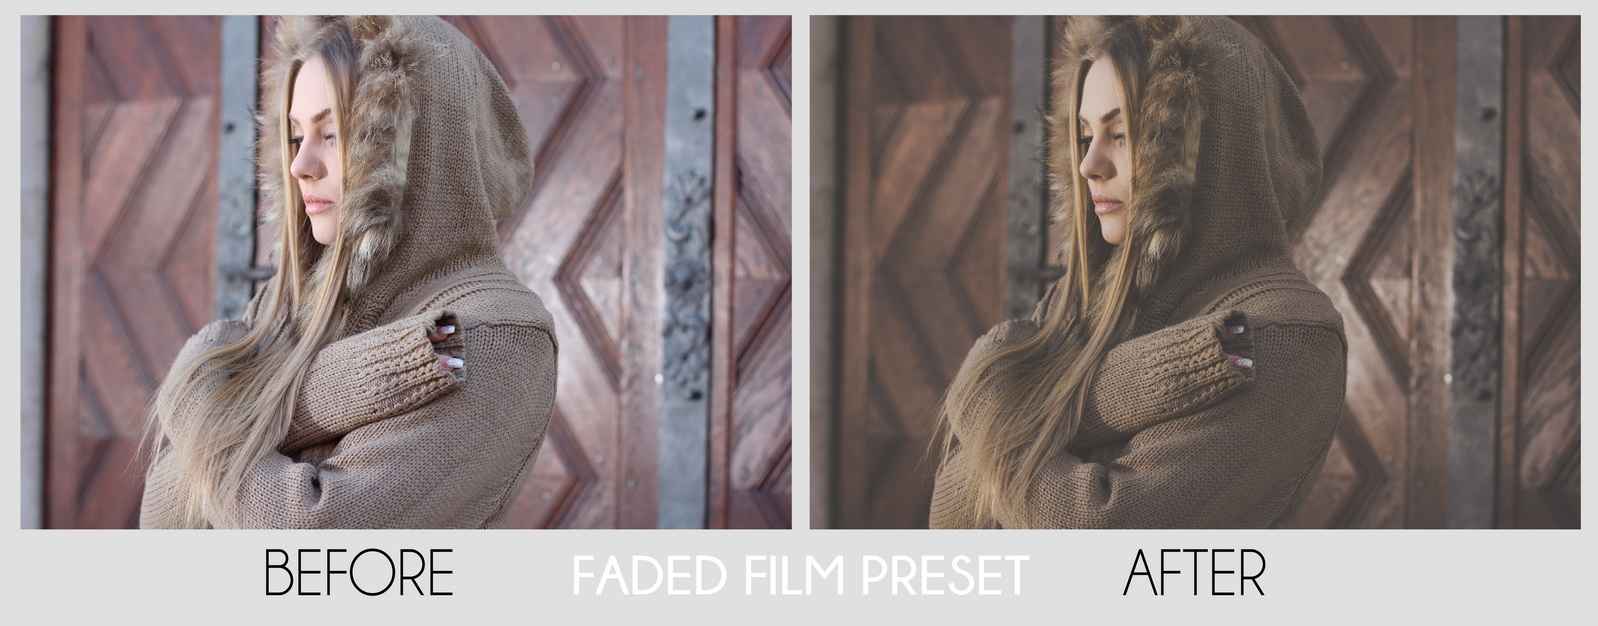 faded film look presets